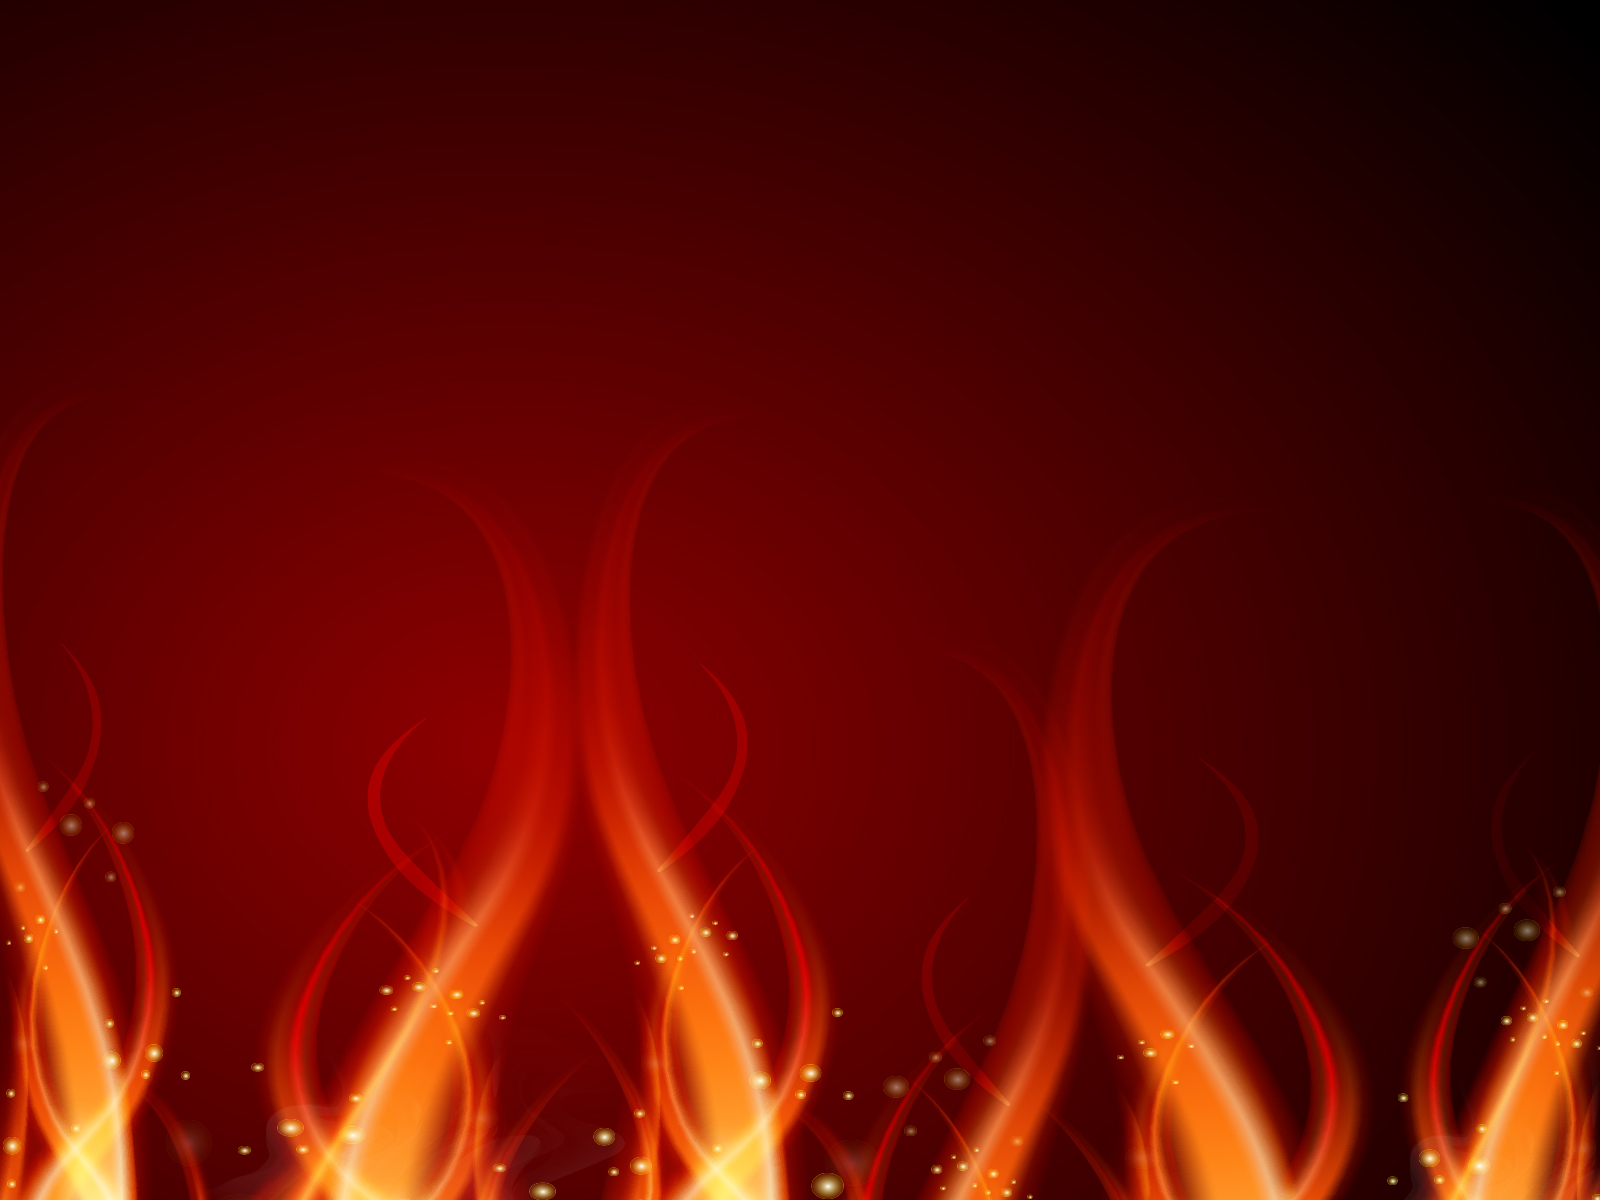 Fire Effect PPT Backgrounds - Abstract, Black, Orange, Red